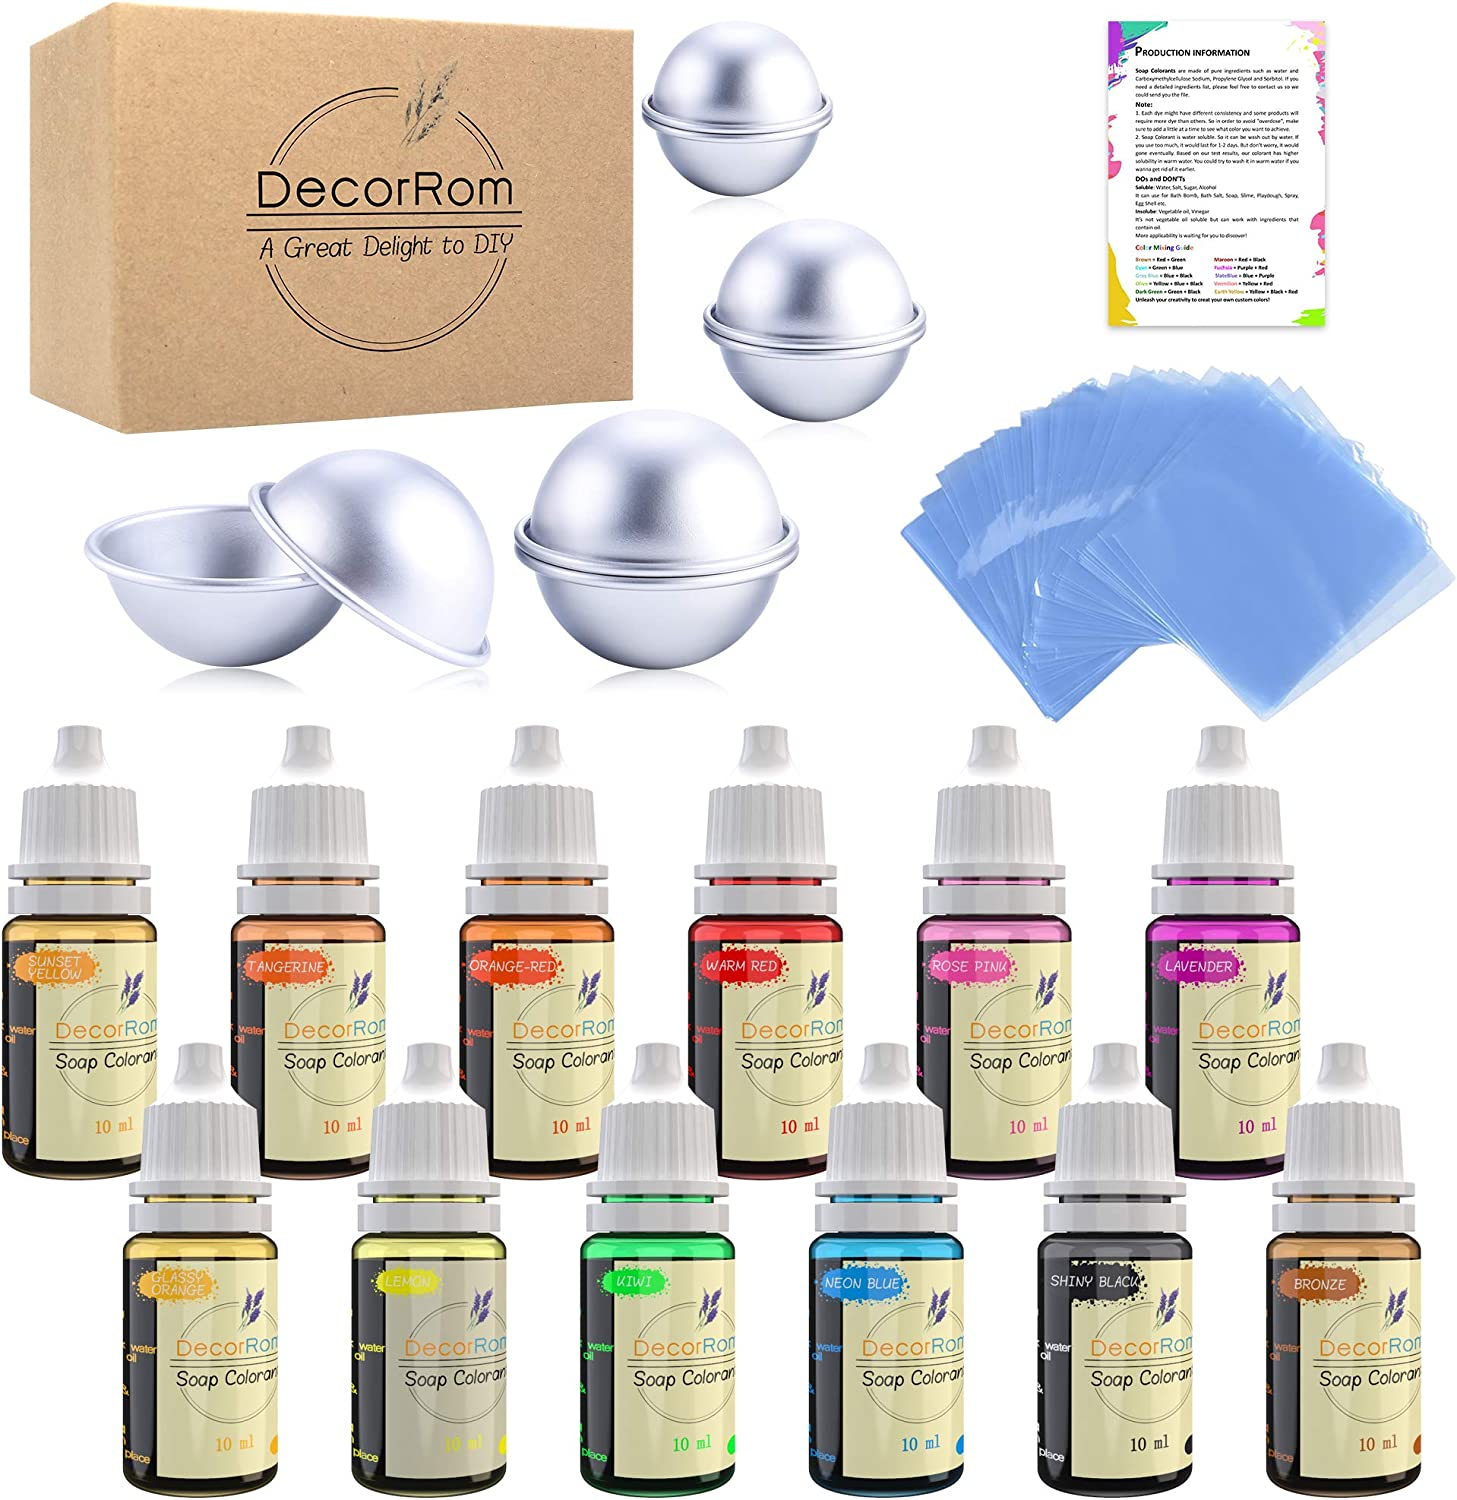 Bath Bomb Mold Set with Soap Colorant,Shrink Wrap Bags - Food Grade Skin Safe Soap Dye for DIY Bath Bomb Making Supplies Kit - Liquid Bath Bomb Dye for Soap Coloring - with Instructions